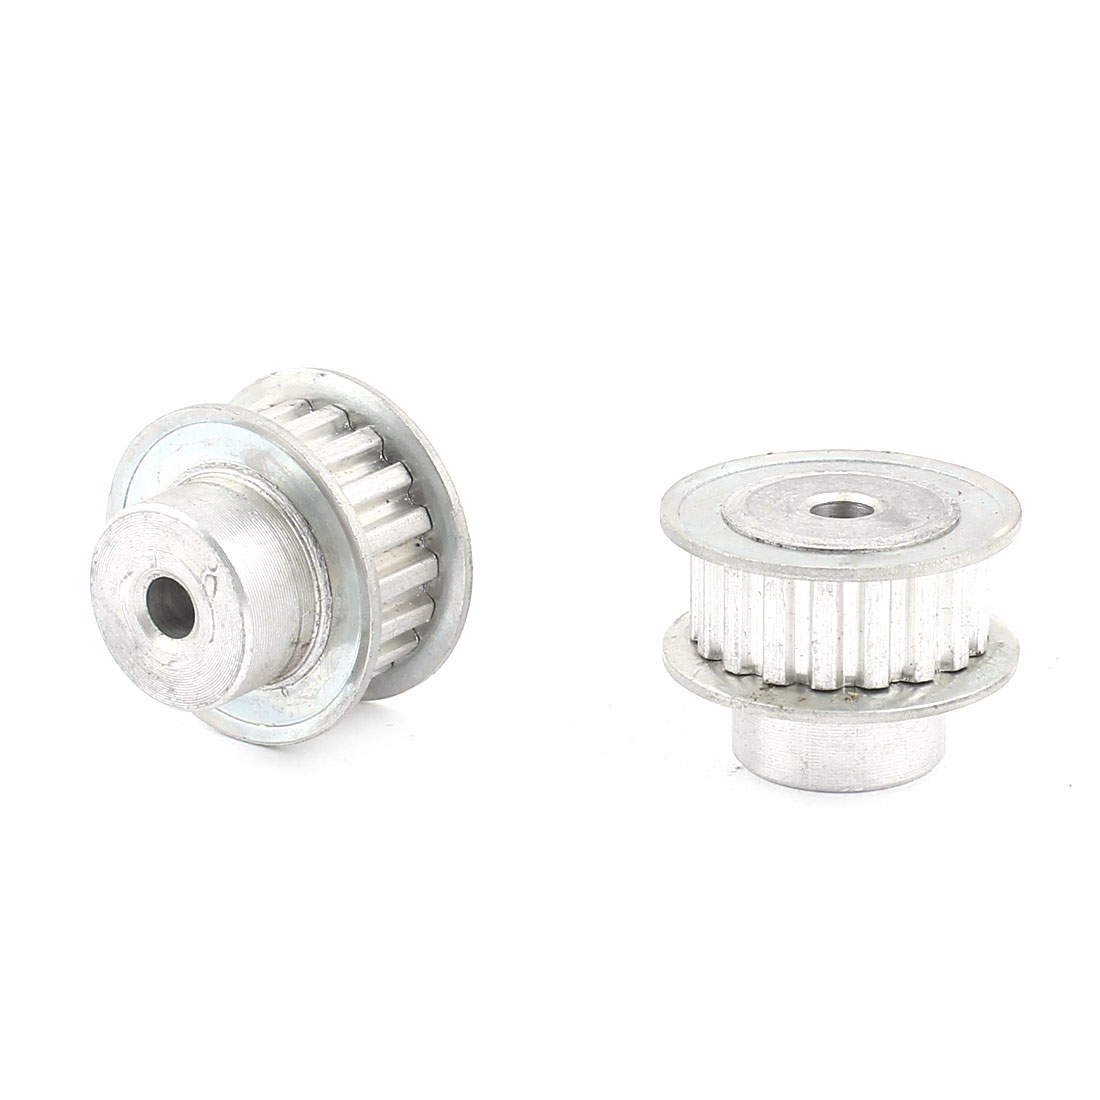 2 Pcs Stainless Steel XL Type 18T 18 Teeth 6mm Diameter Bore Timing Belt Pulley